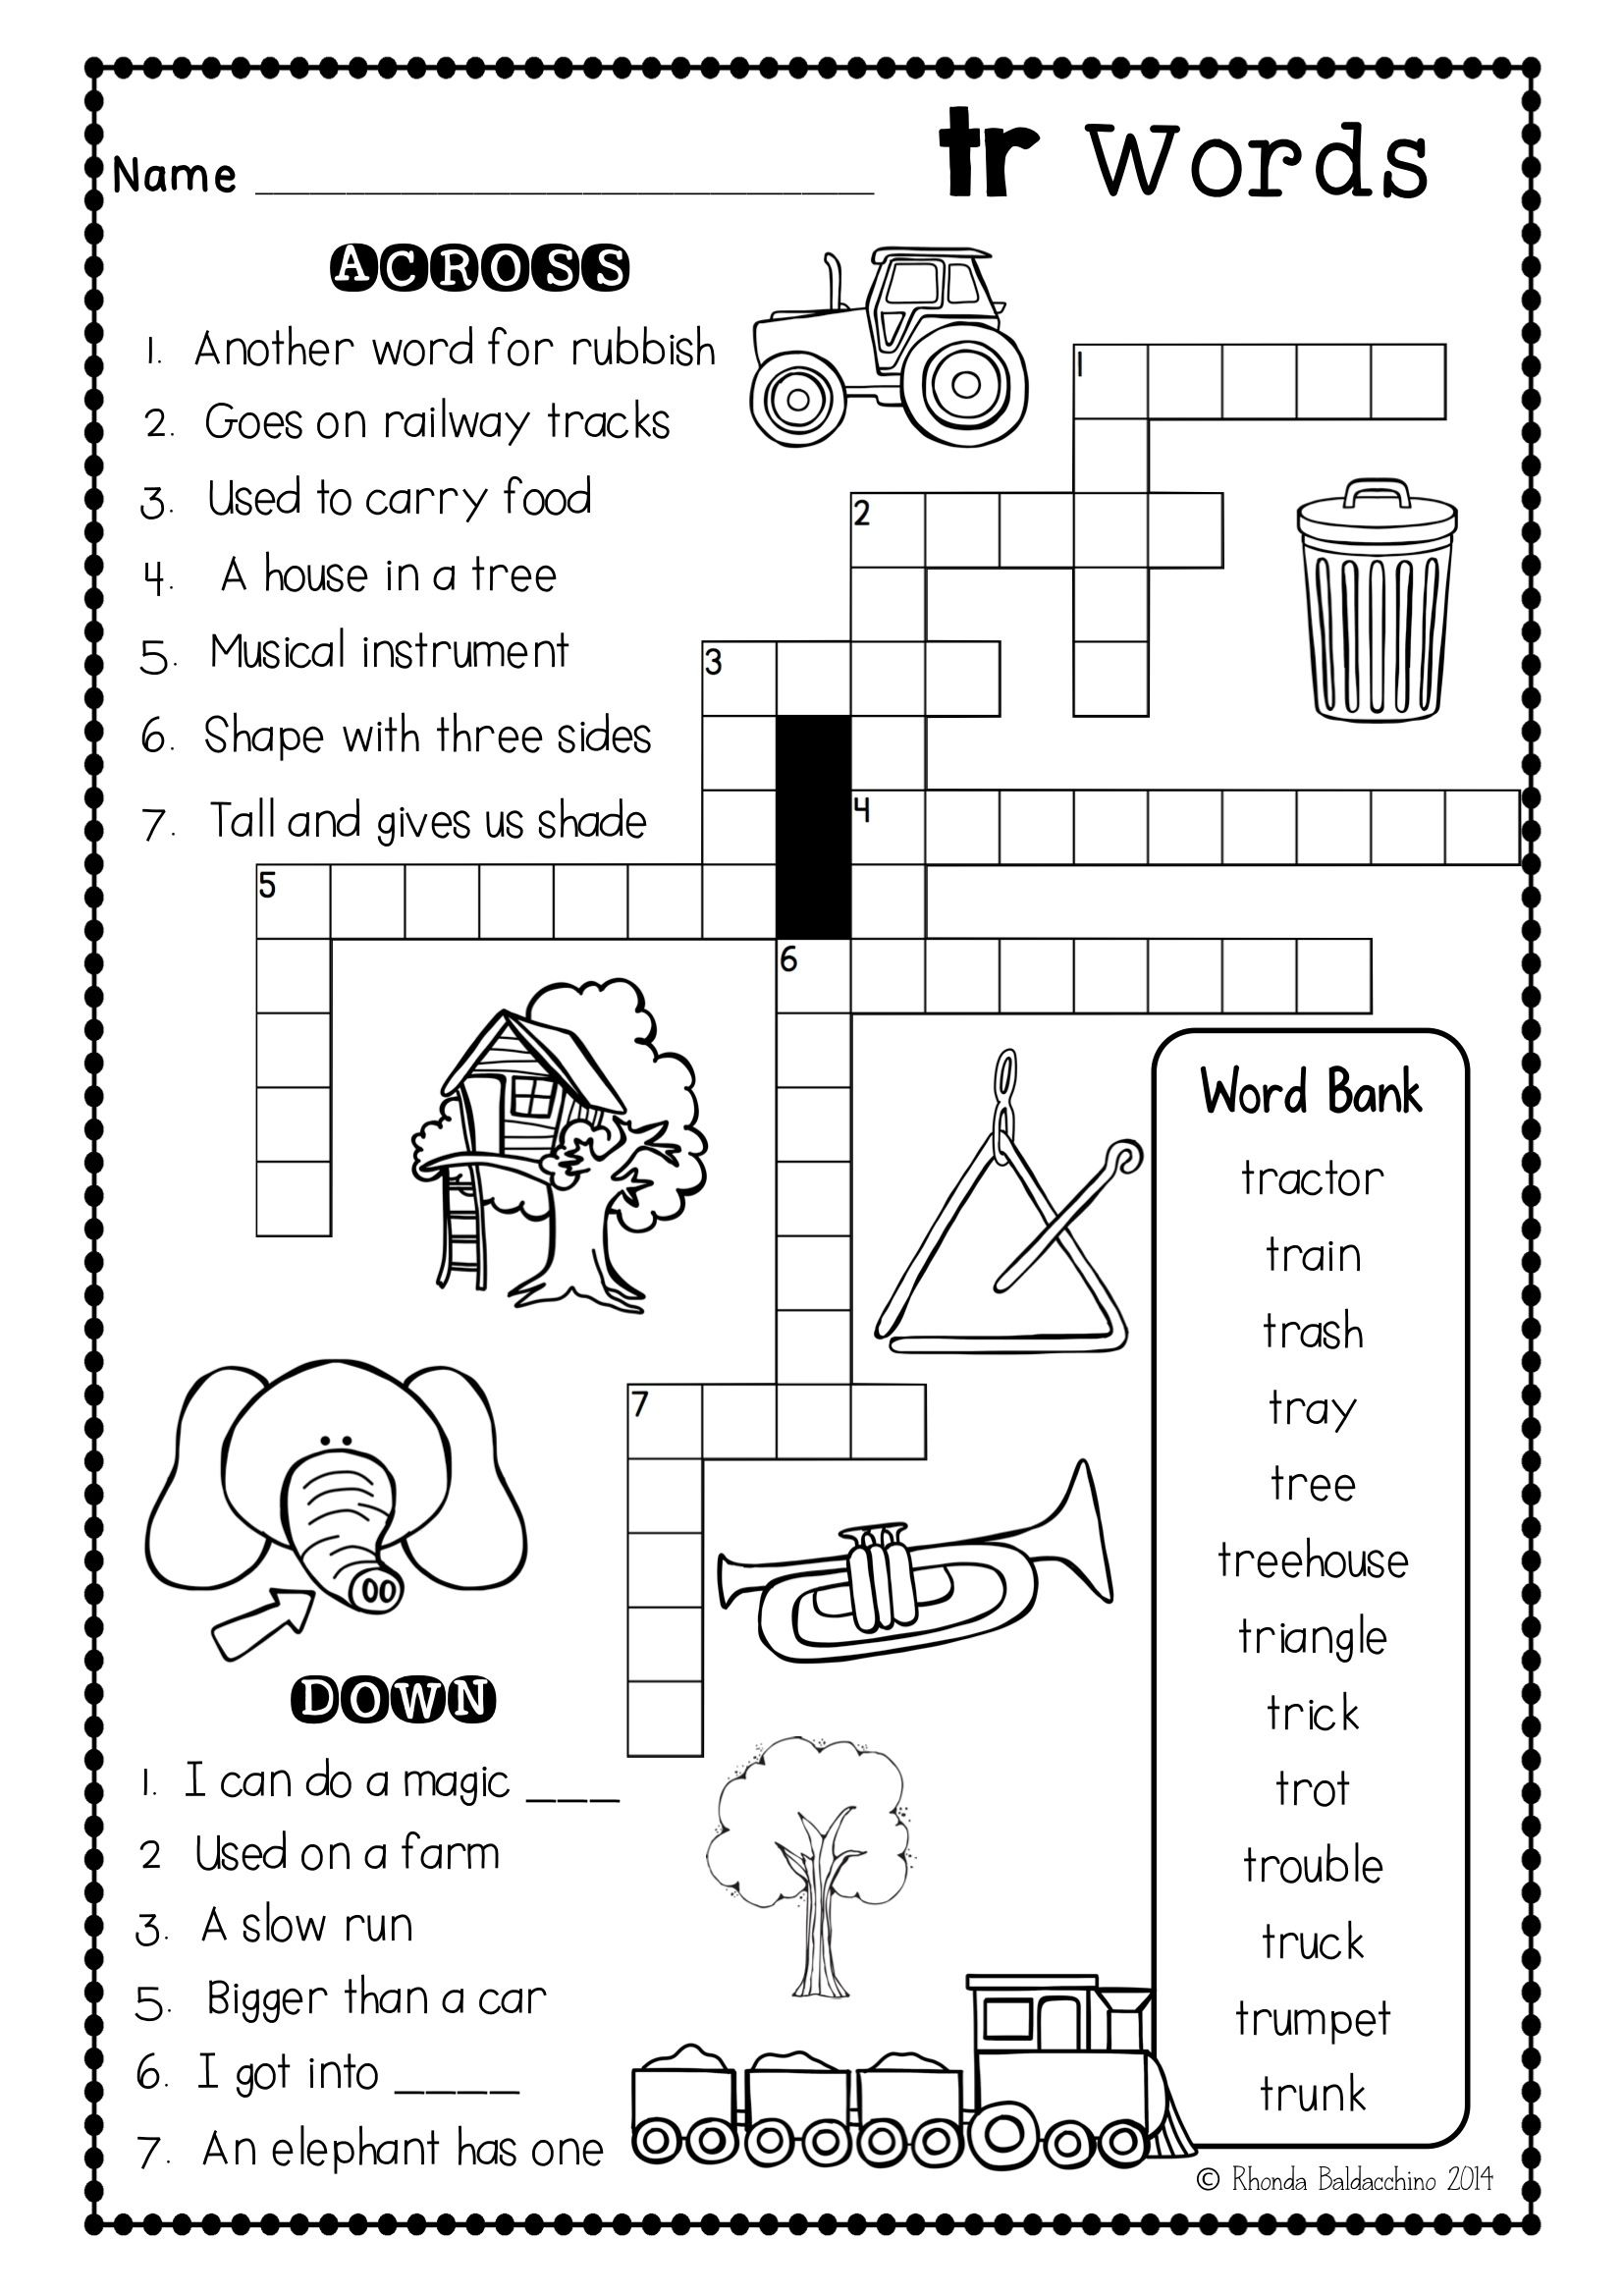 hight resolution of These are Fun blends crossword puzzles to supplement any phonics program   Blends  worksheets